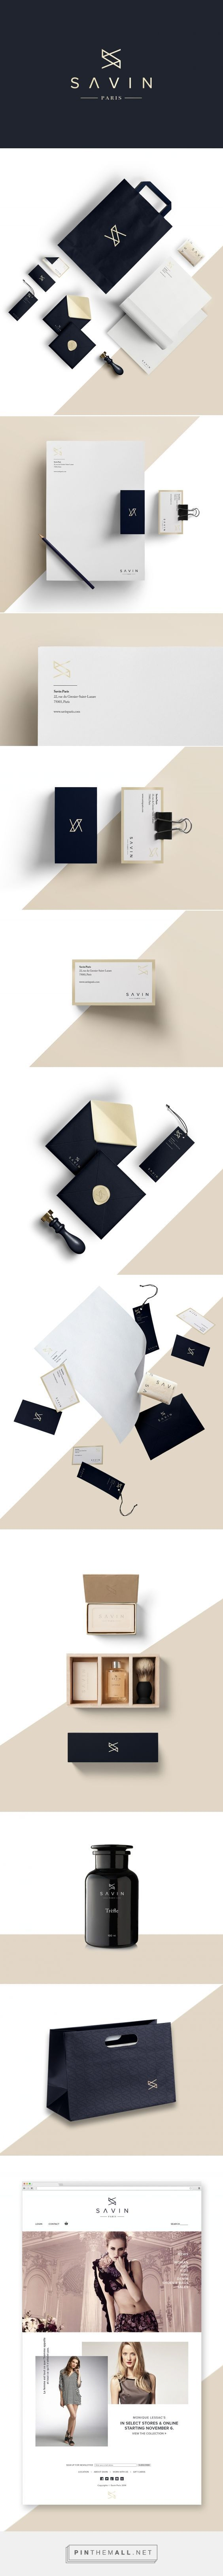 Savin Paris - fashion apparel on Behance - branding stationary corporate identity visual design label business card letterhead bag packaging website enveloppe logo minimalistic graphic design / Branding / Design / Brand / Inspiration / Fashion / Retailer / Sober / Elegant / Gold / Minimal / Minimalist /